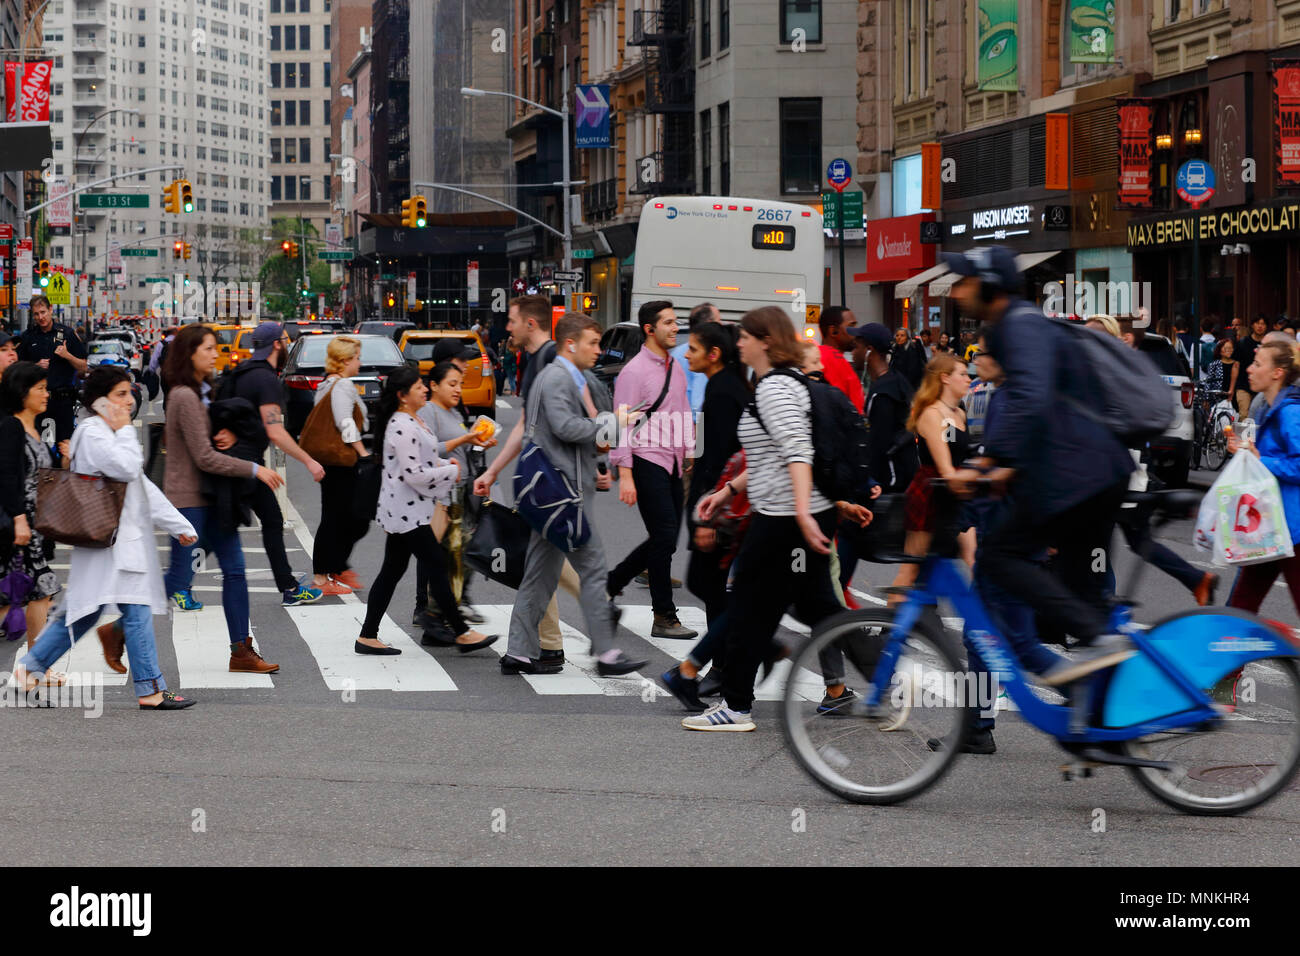 People crossing the street in Union Square in Manhattan, New York - Stock Image